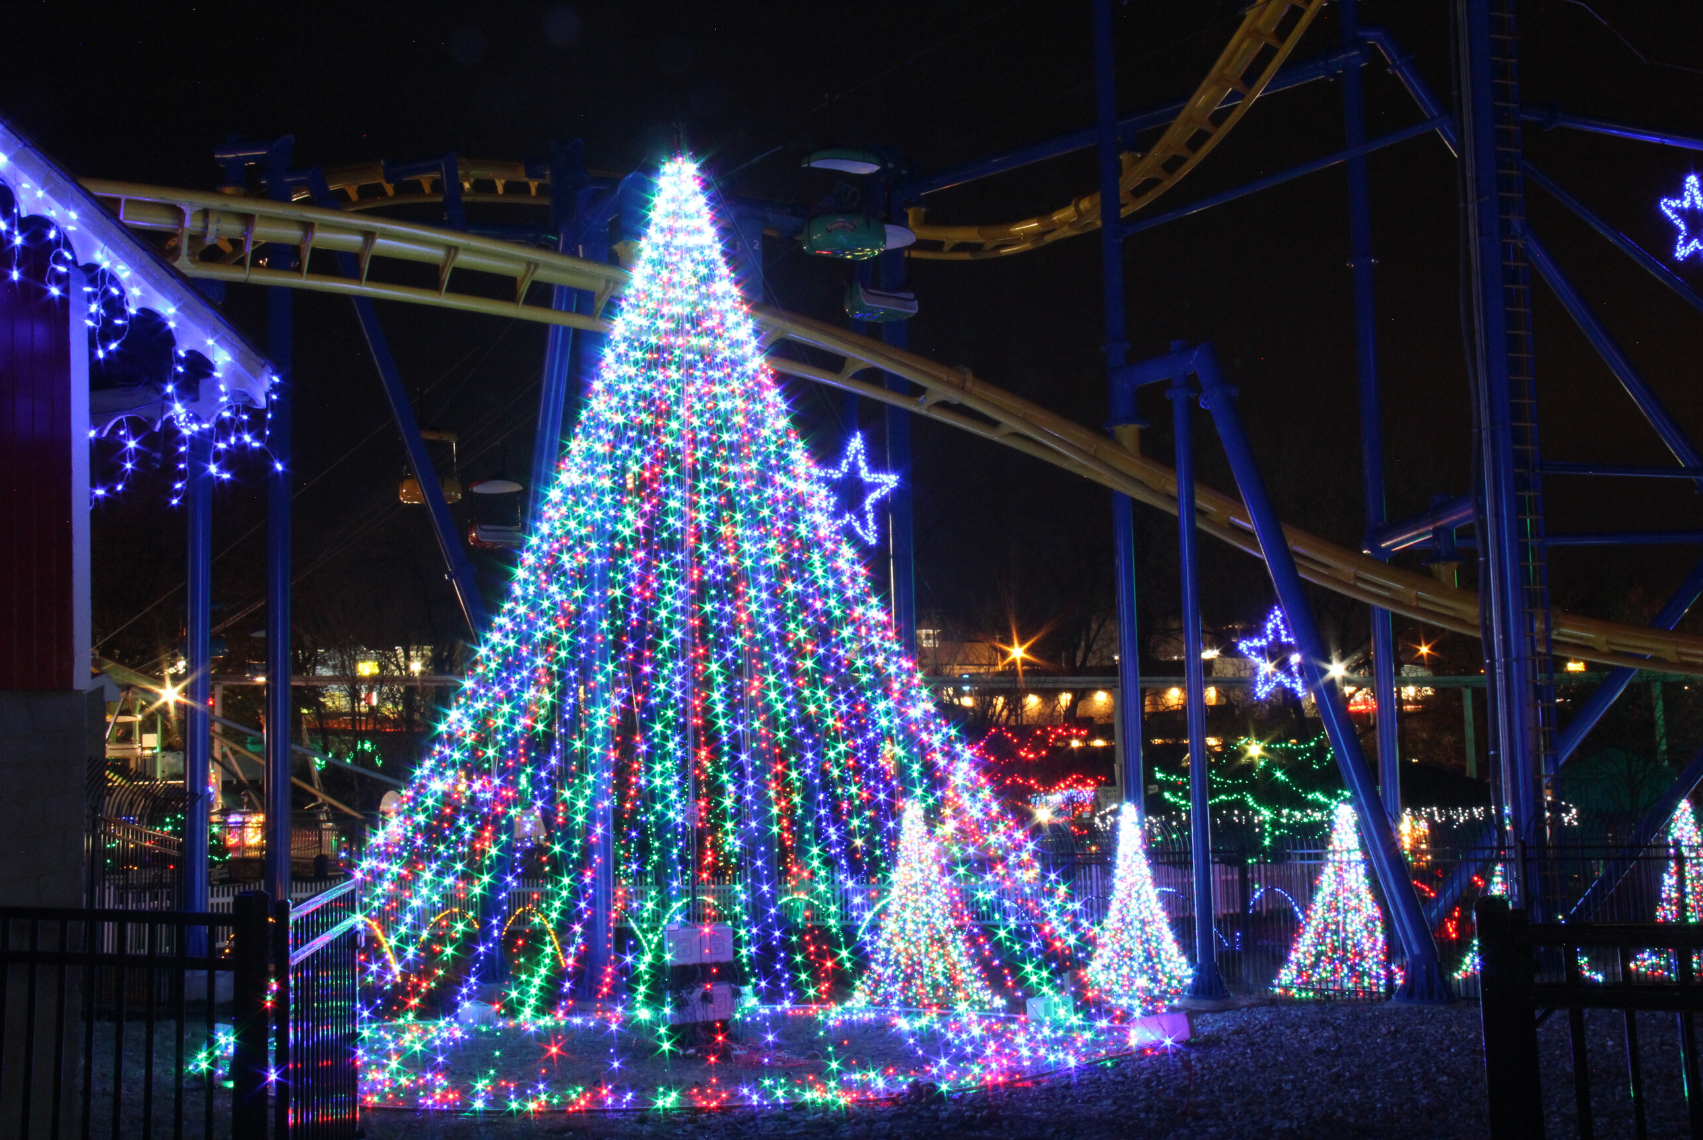 Trees made of holiday lights in front of Merlin's Mayhem Family Roller Coaster